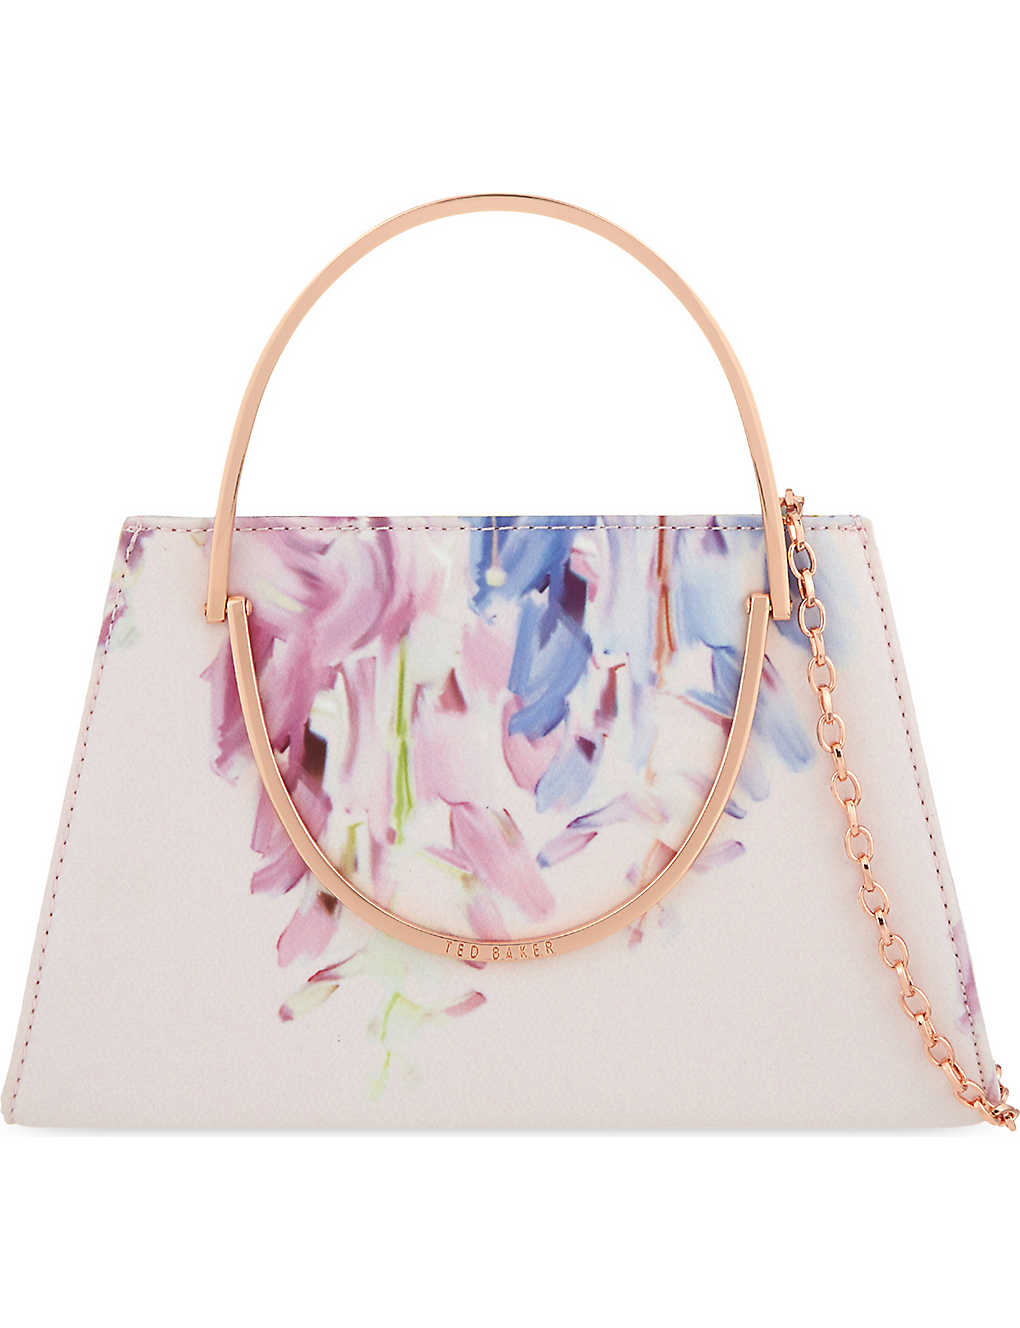 TED BAKER: Cindy Hanging Gardens clutch